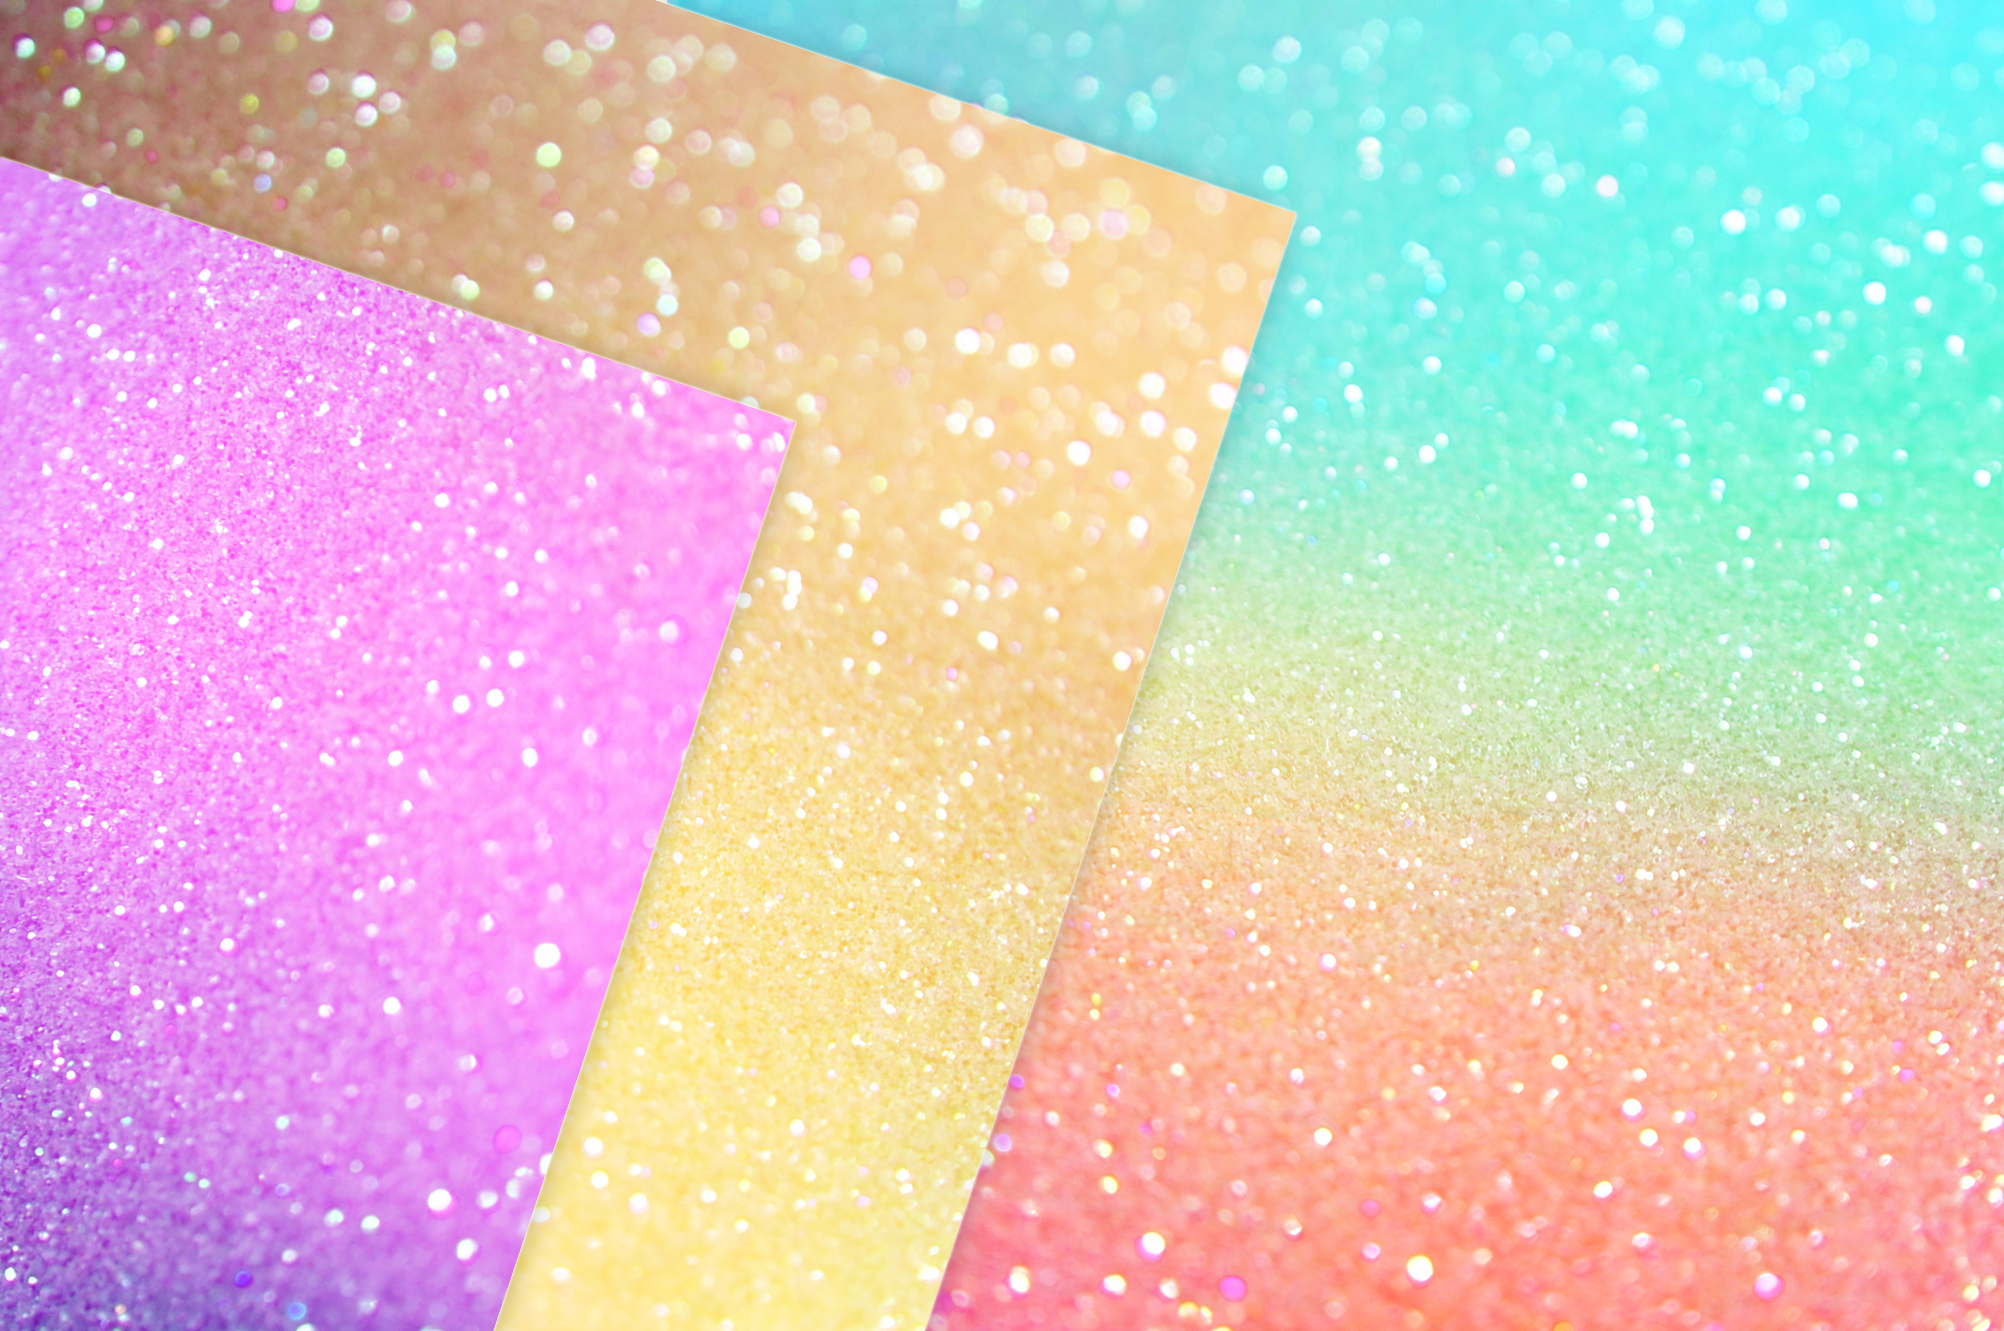 Iridescent 95 Glitter Textures Holographic Backgrounds example image 7